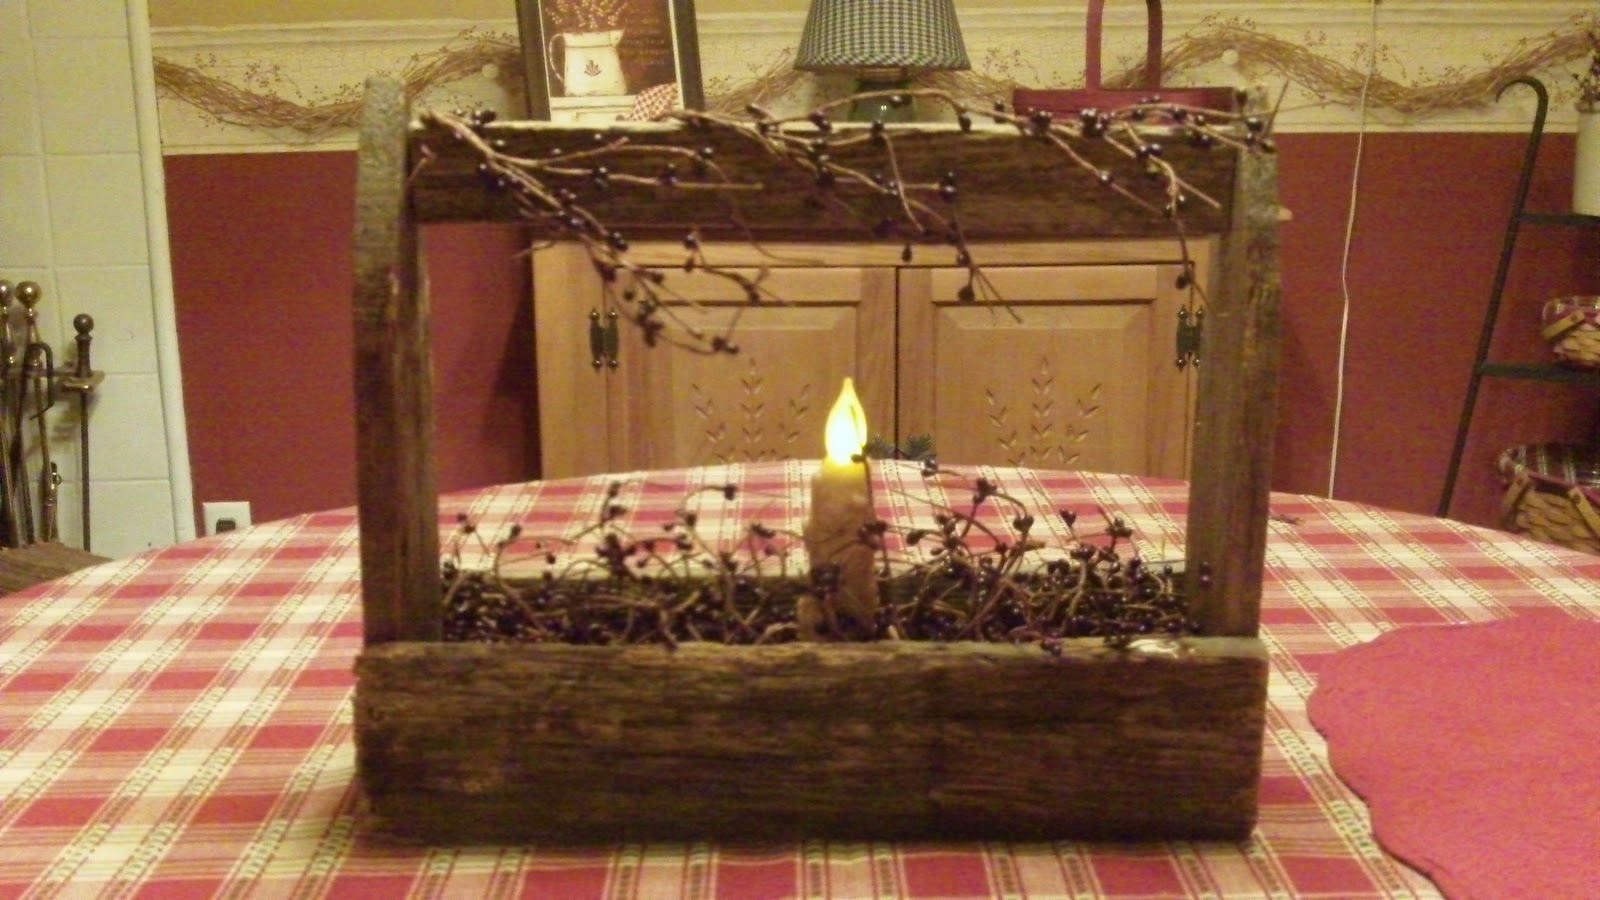 Country home decorating ideas primitive toolbox - Country home interior design ideas ...